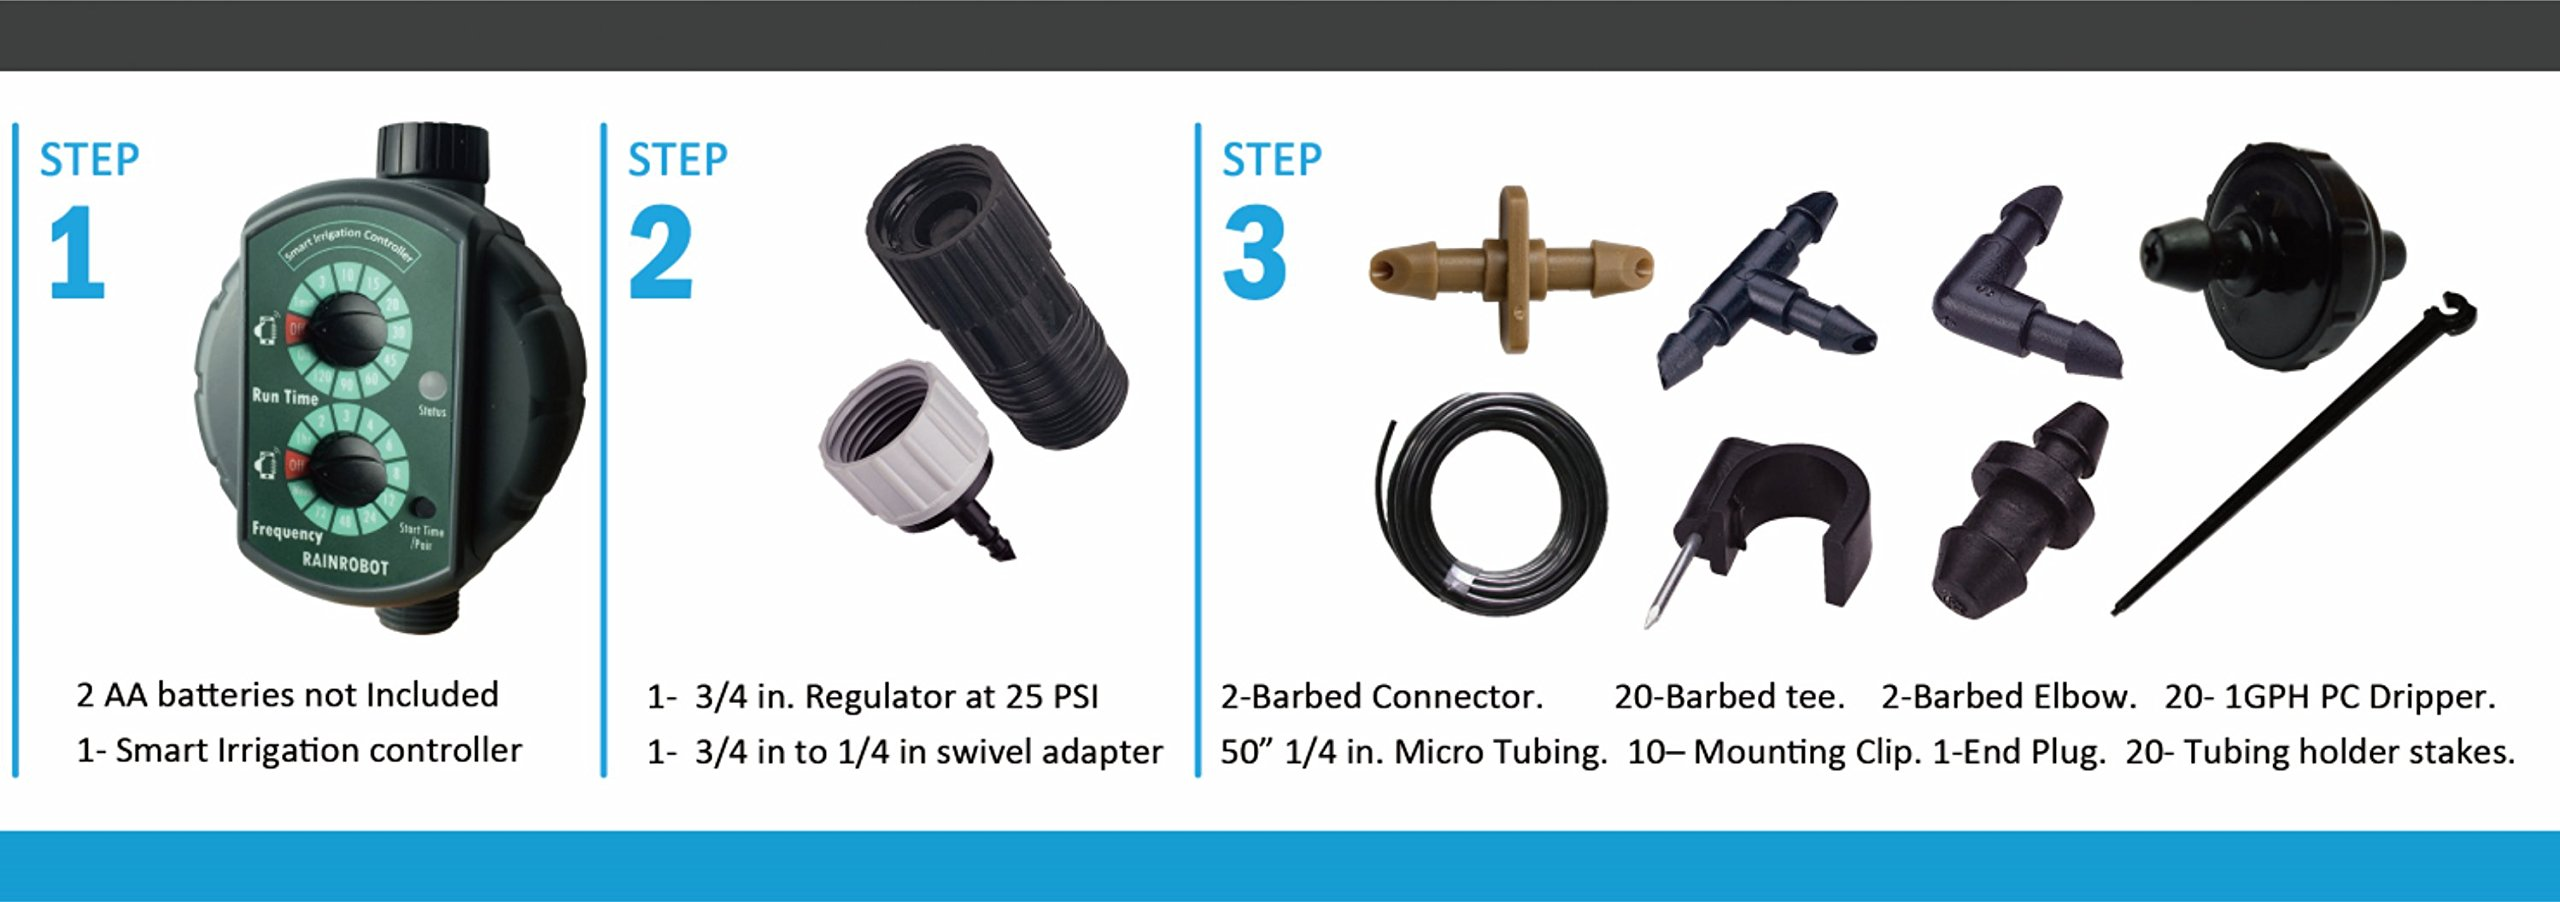 RainRobot SW8100D Smart Drip Irrigation System/Full Kit, for Containers, Hanging Baskets, Flower Beds, Vegetable Gardens etc.Indoor/Outdoor